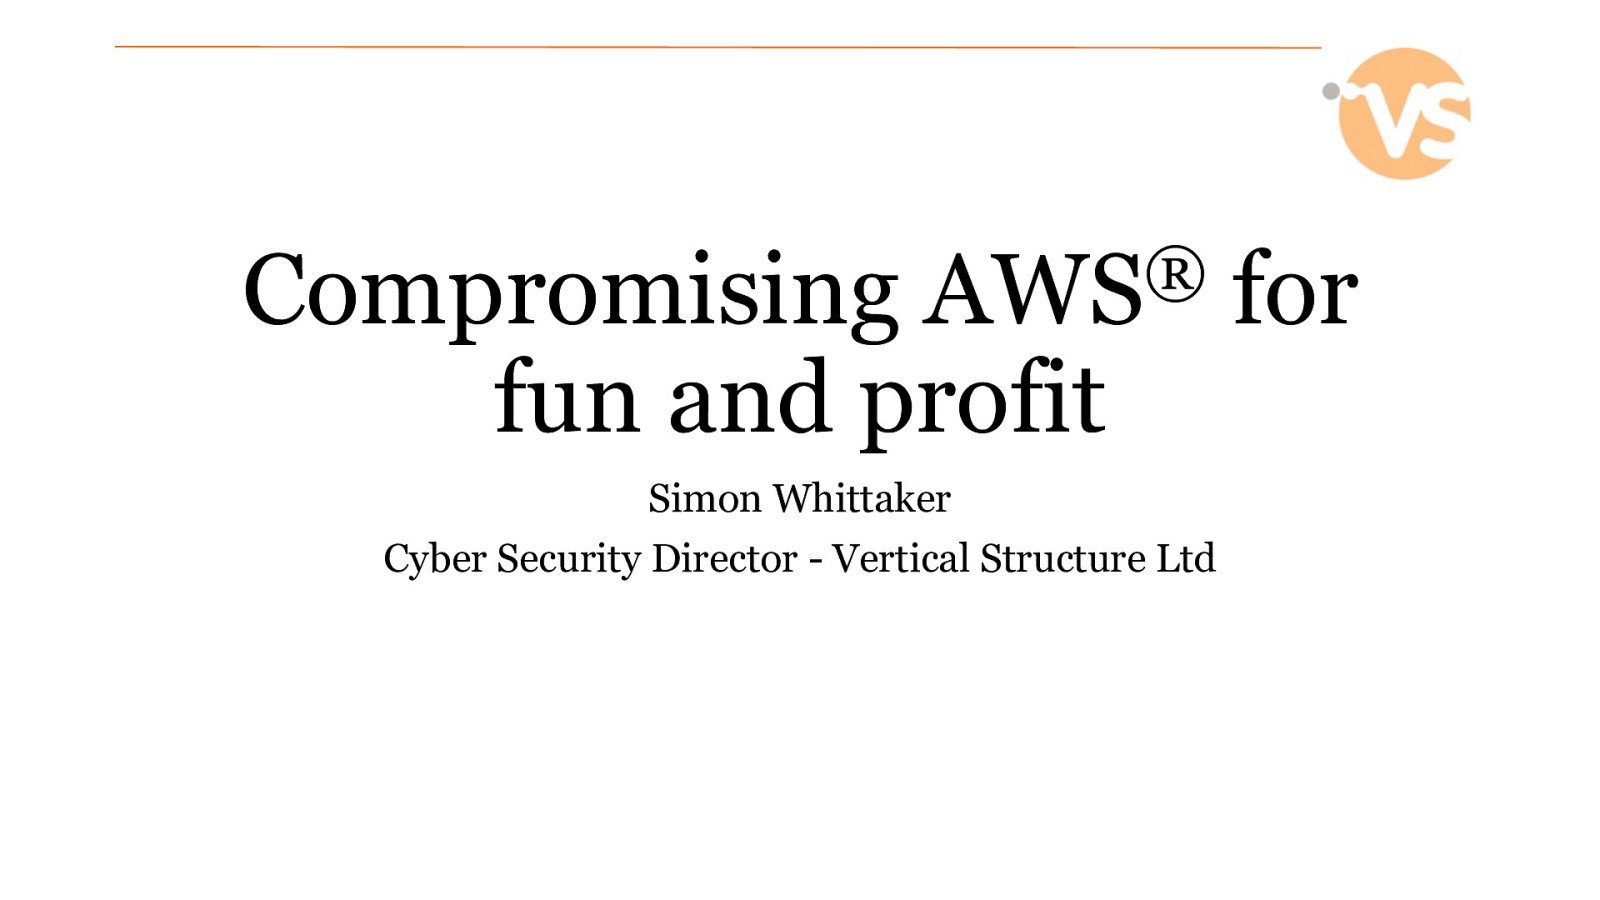 Compromising AWS® for fun and profit